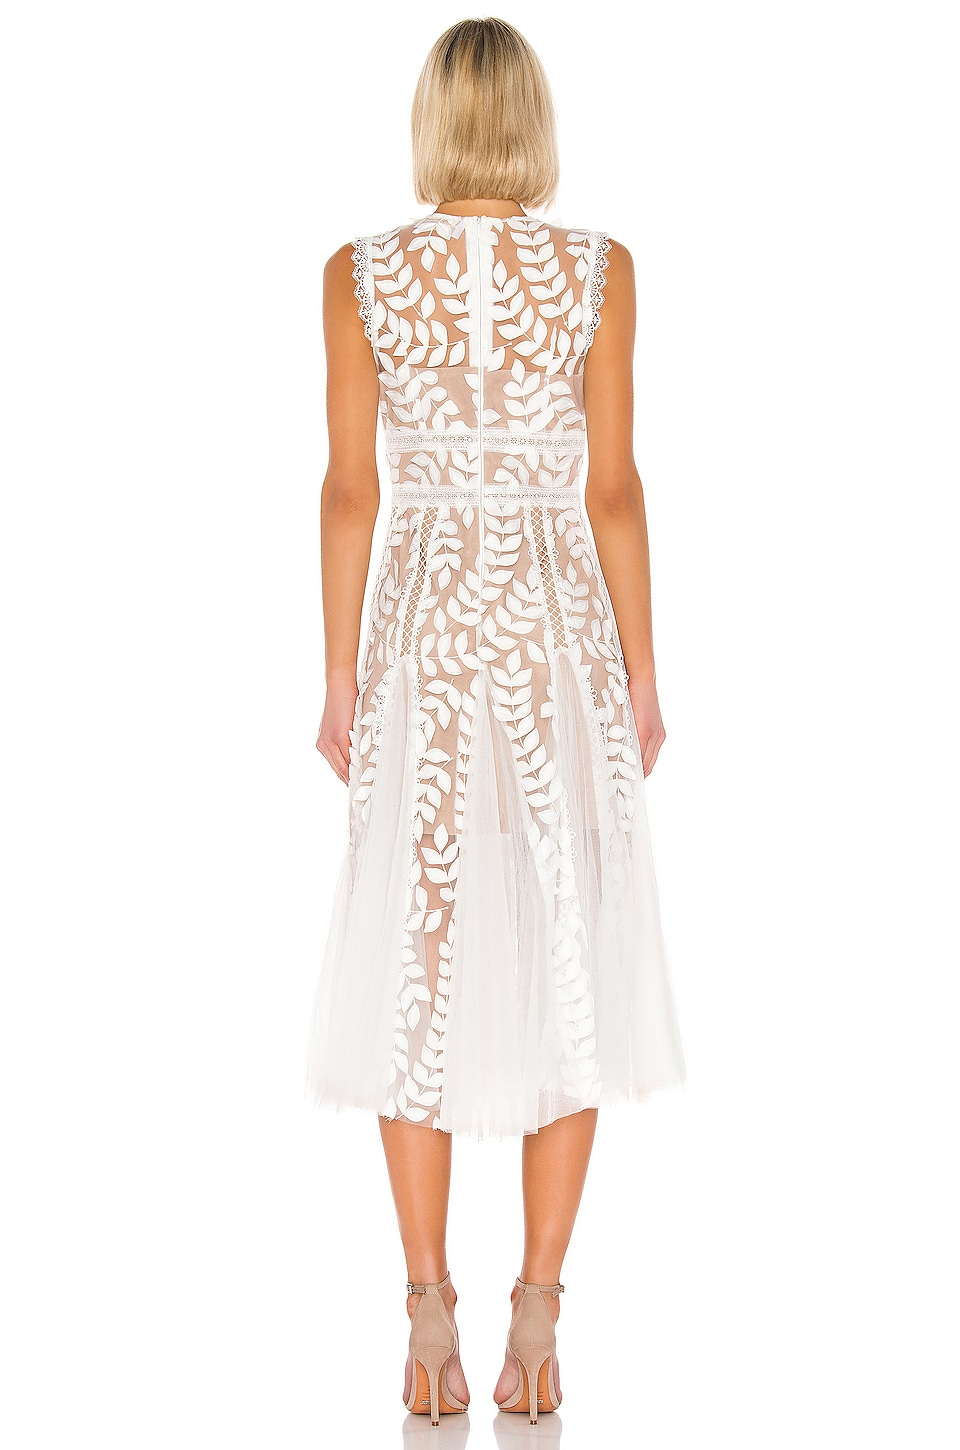 Saba Blanc Midi Dress, view 3, click to view large image.